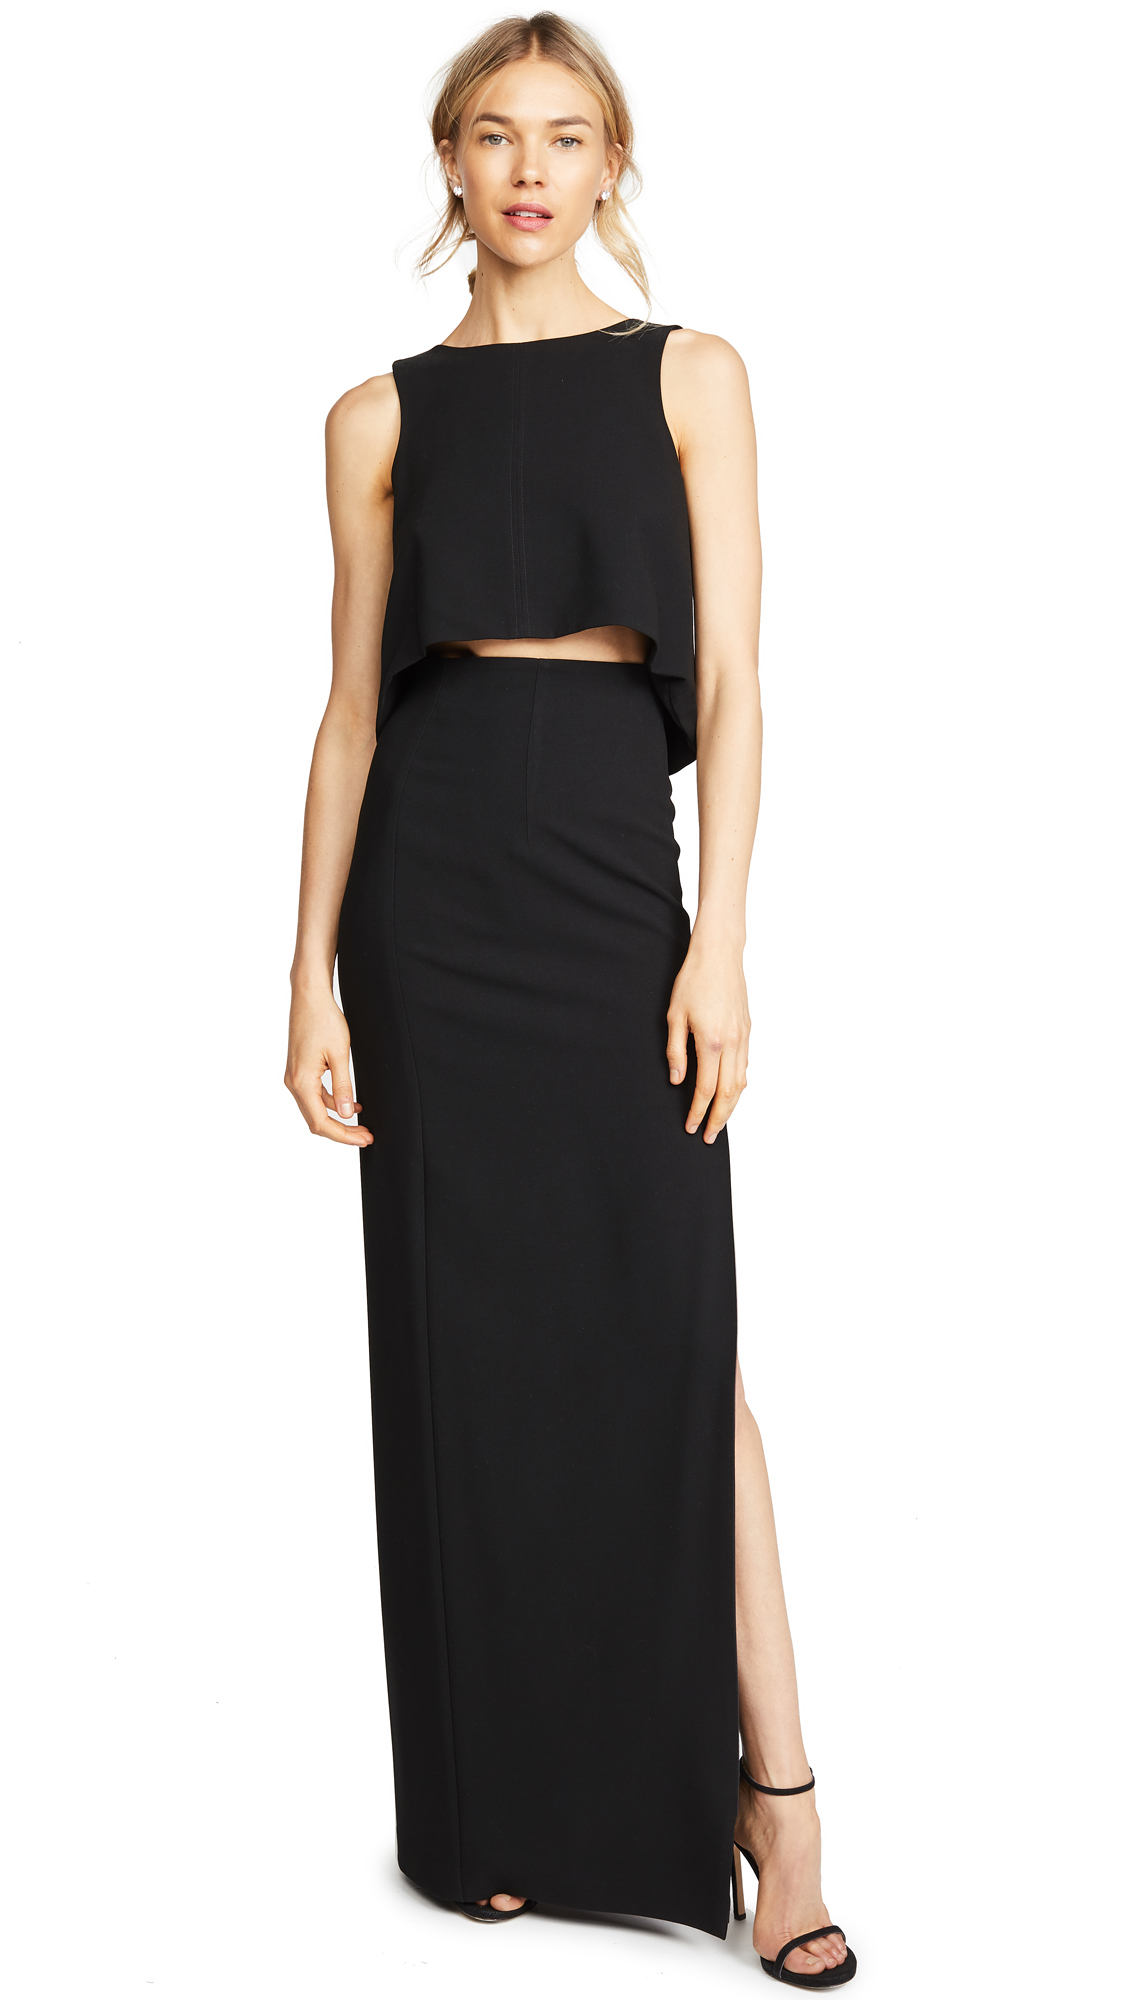 Black Halo Kacie 2 Piece Maxi Dress - Black